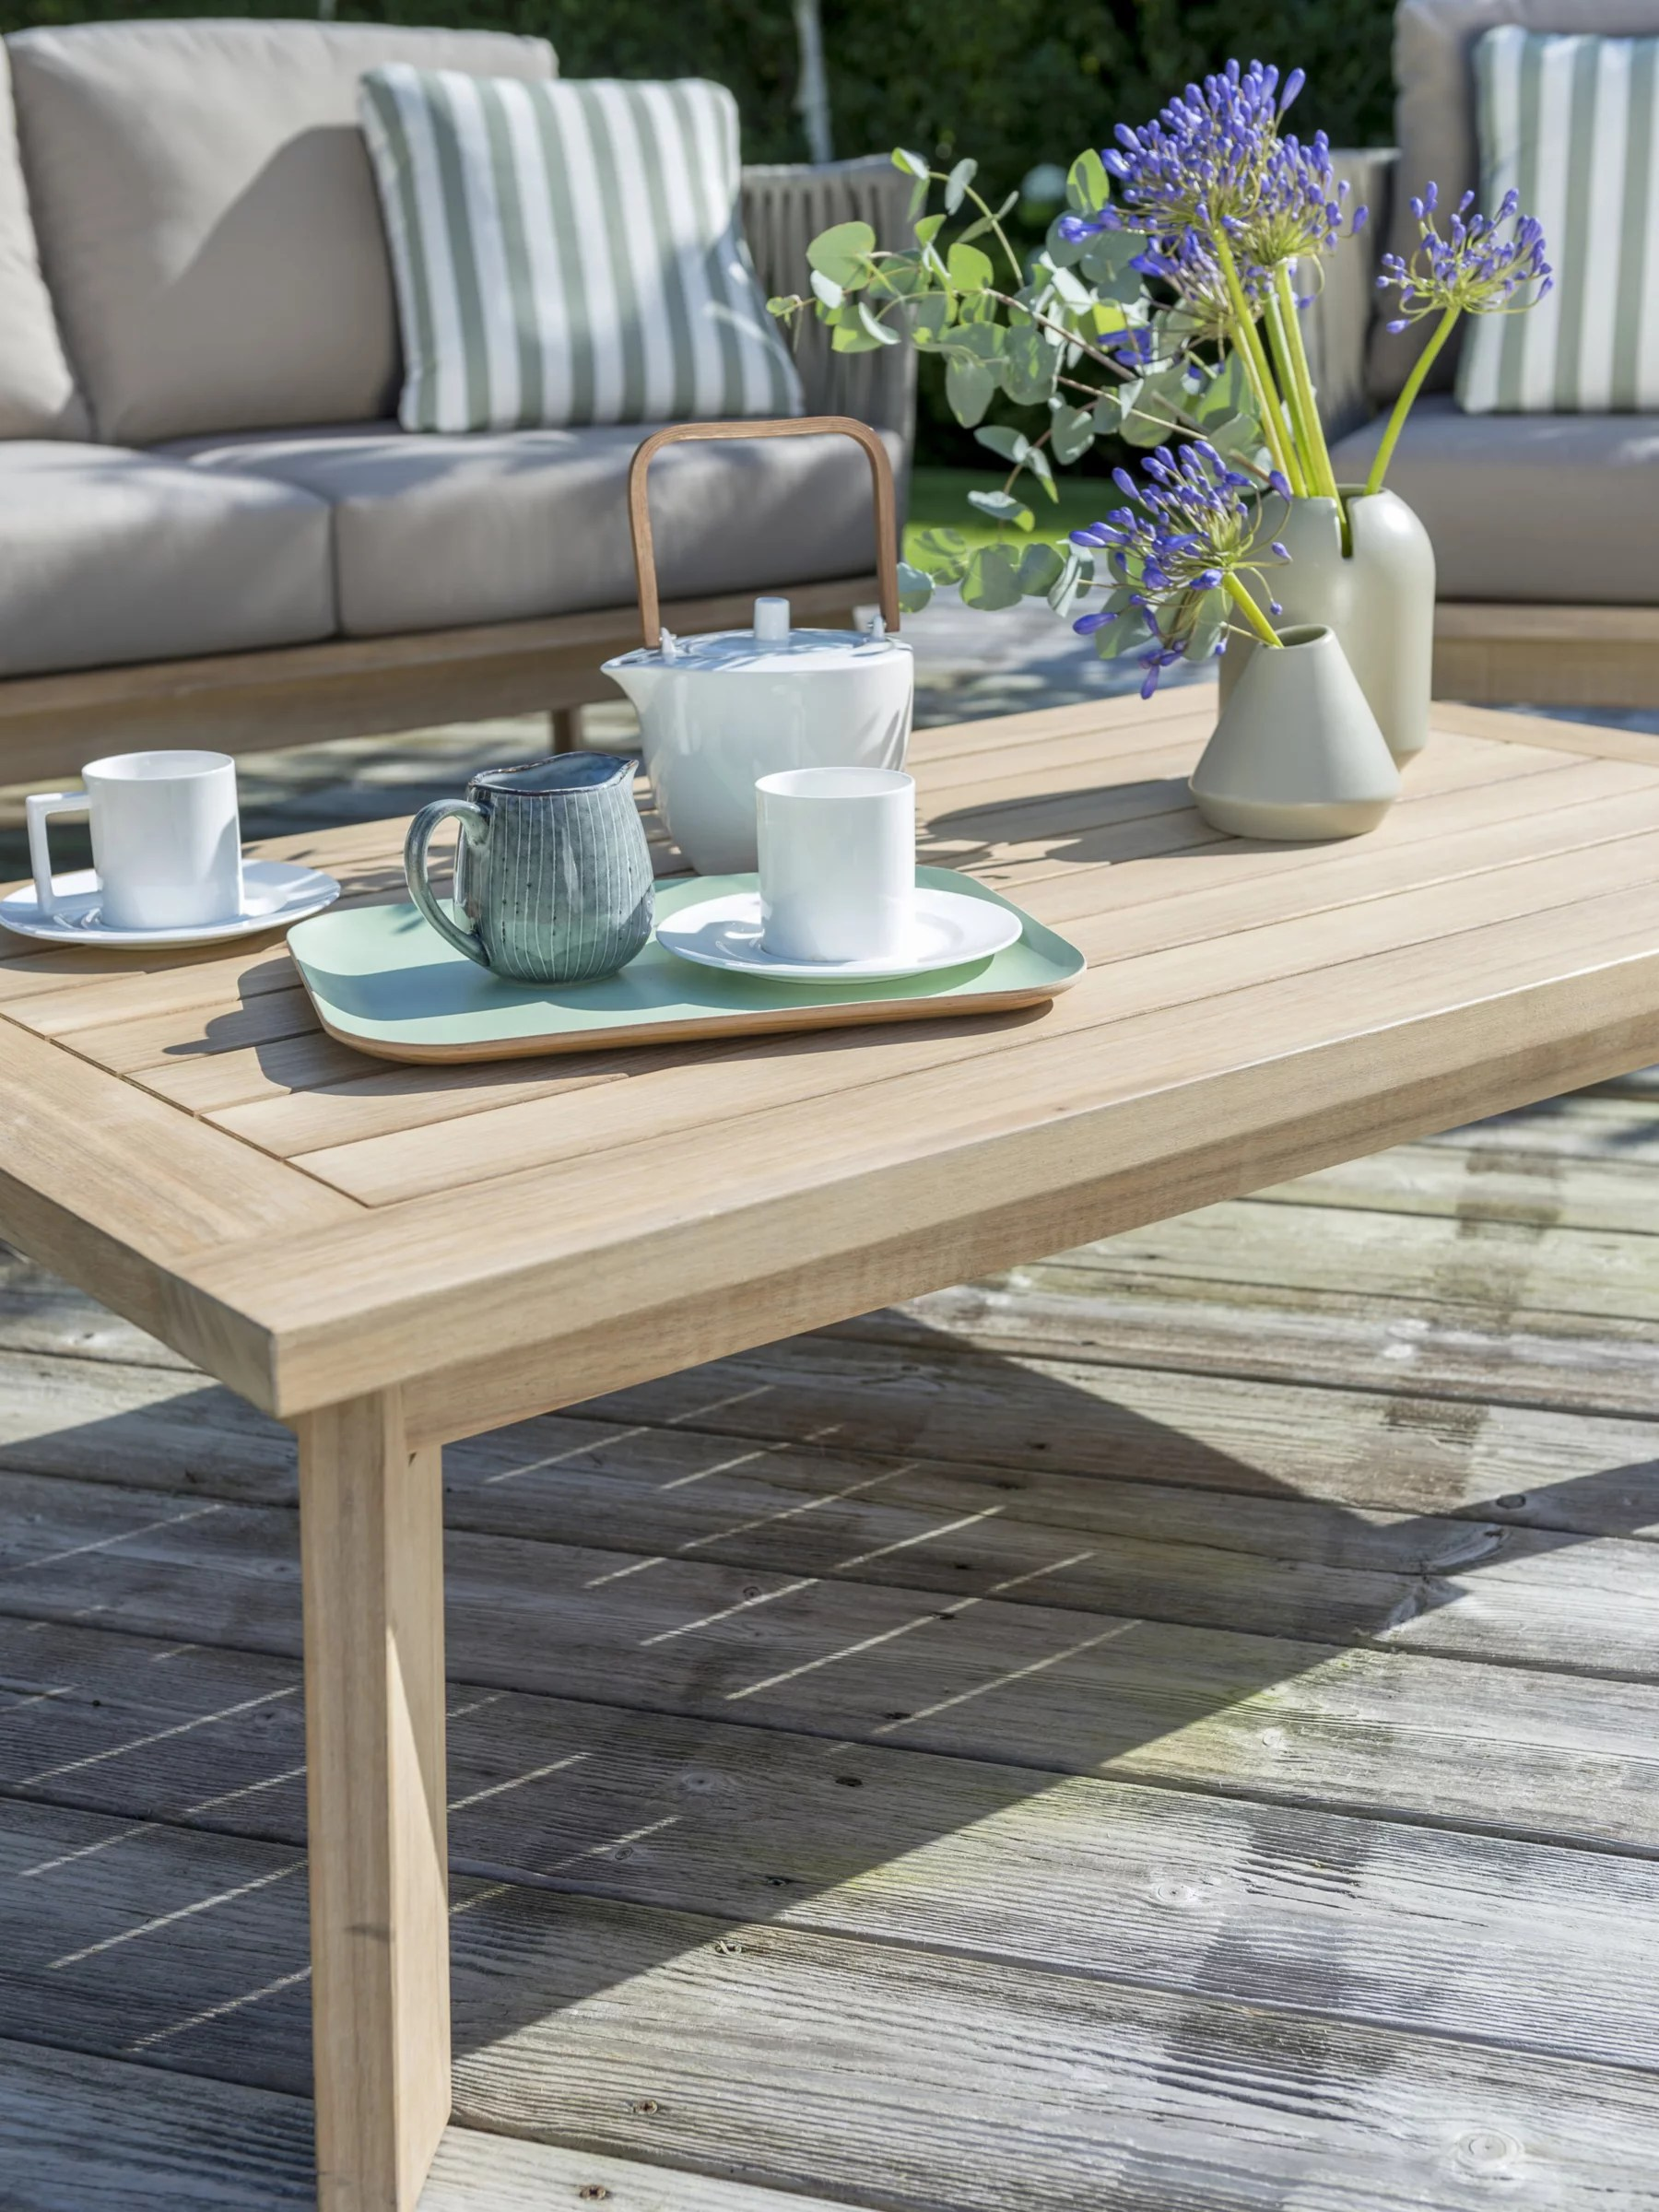 kettler adelaide garden table chairs 5 seater lounging set fsc certified eucalyptus wood natural